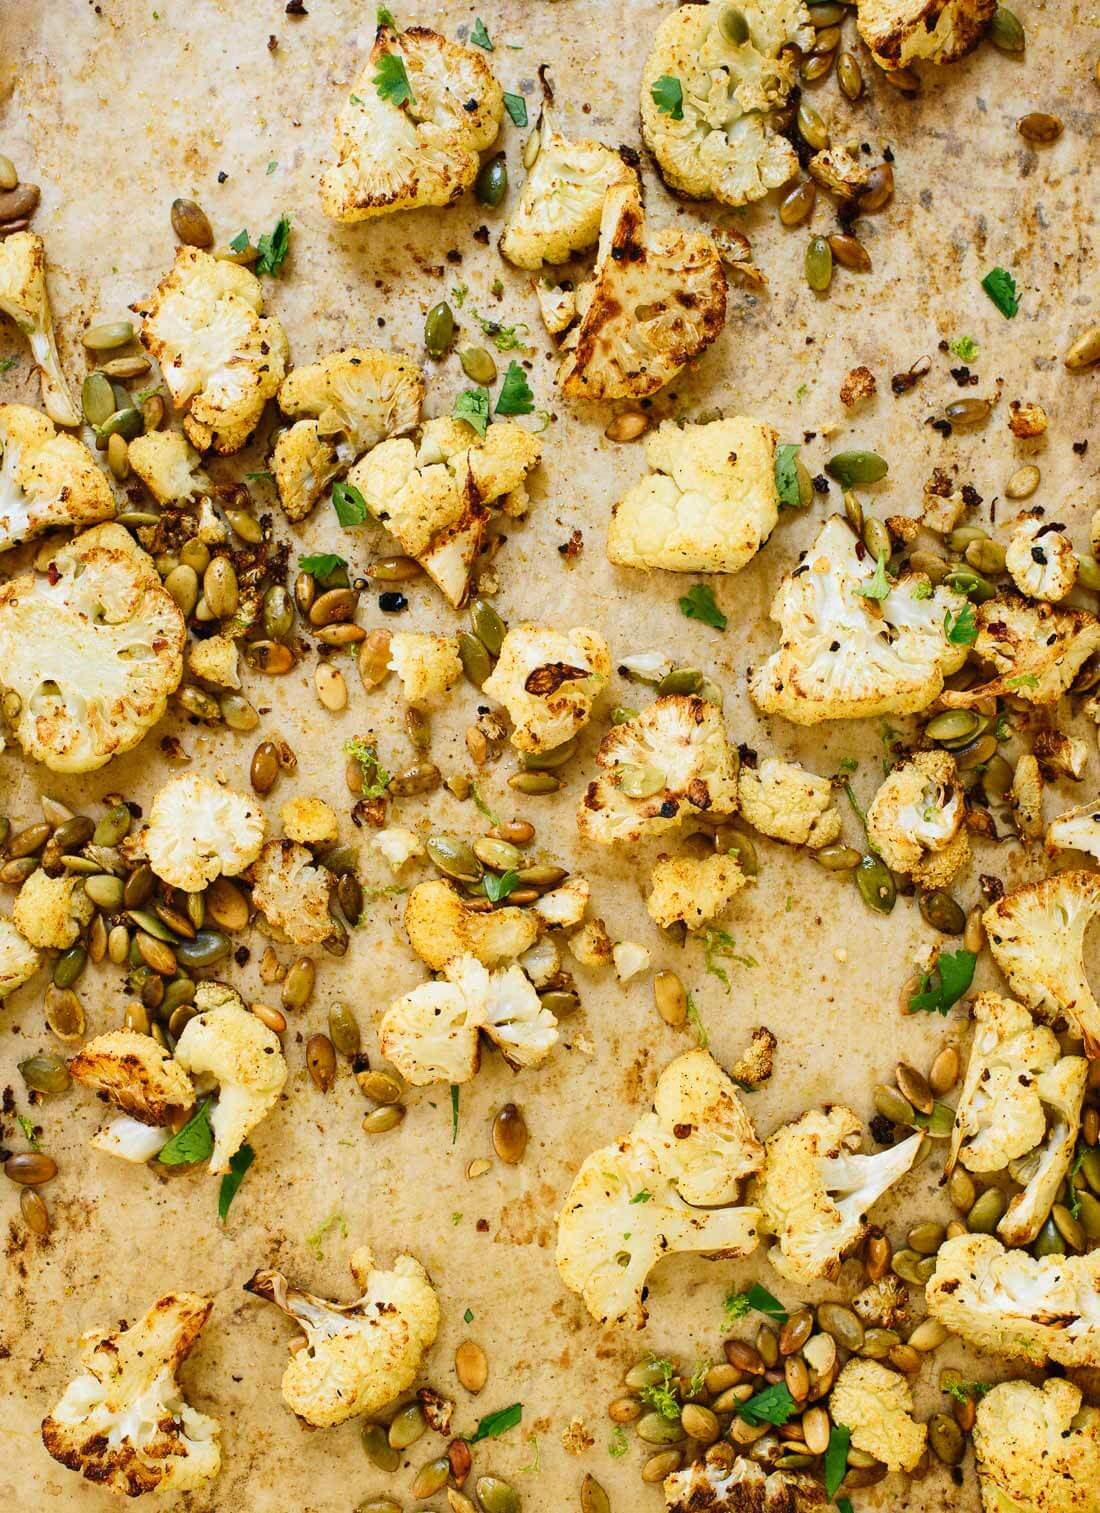 Roasted cauliflower with Mexican flavors (cumin, chili powder, pepitas and lime!). It's the perfect healthy side dish for your favorite Mexican recipes! cookieandkate.com